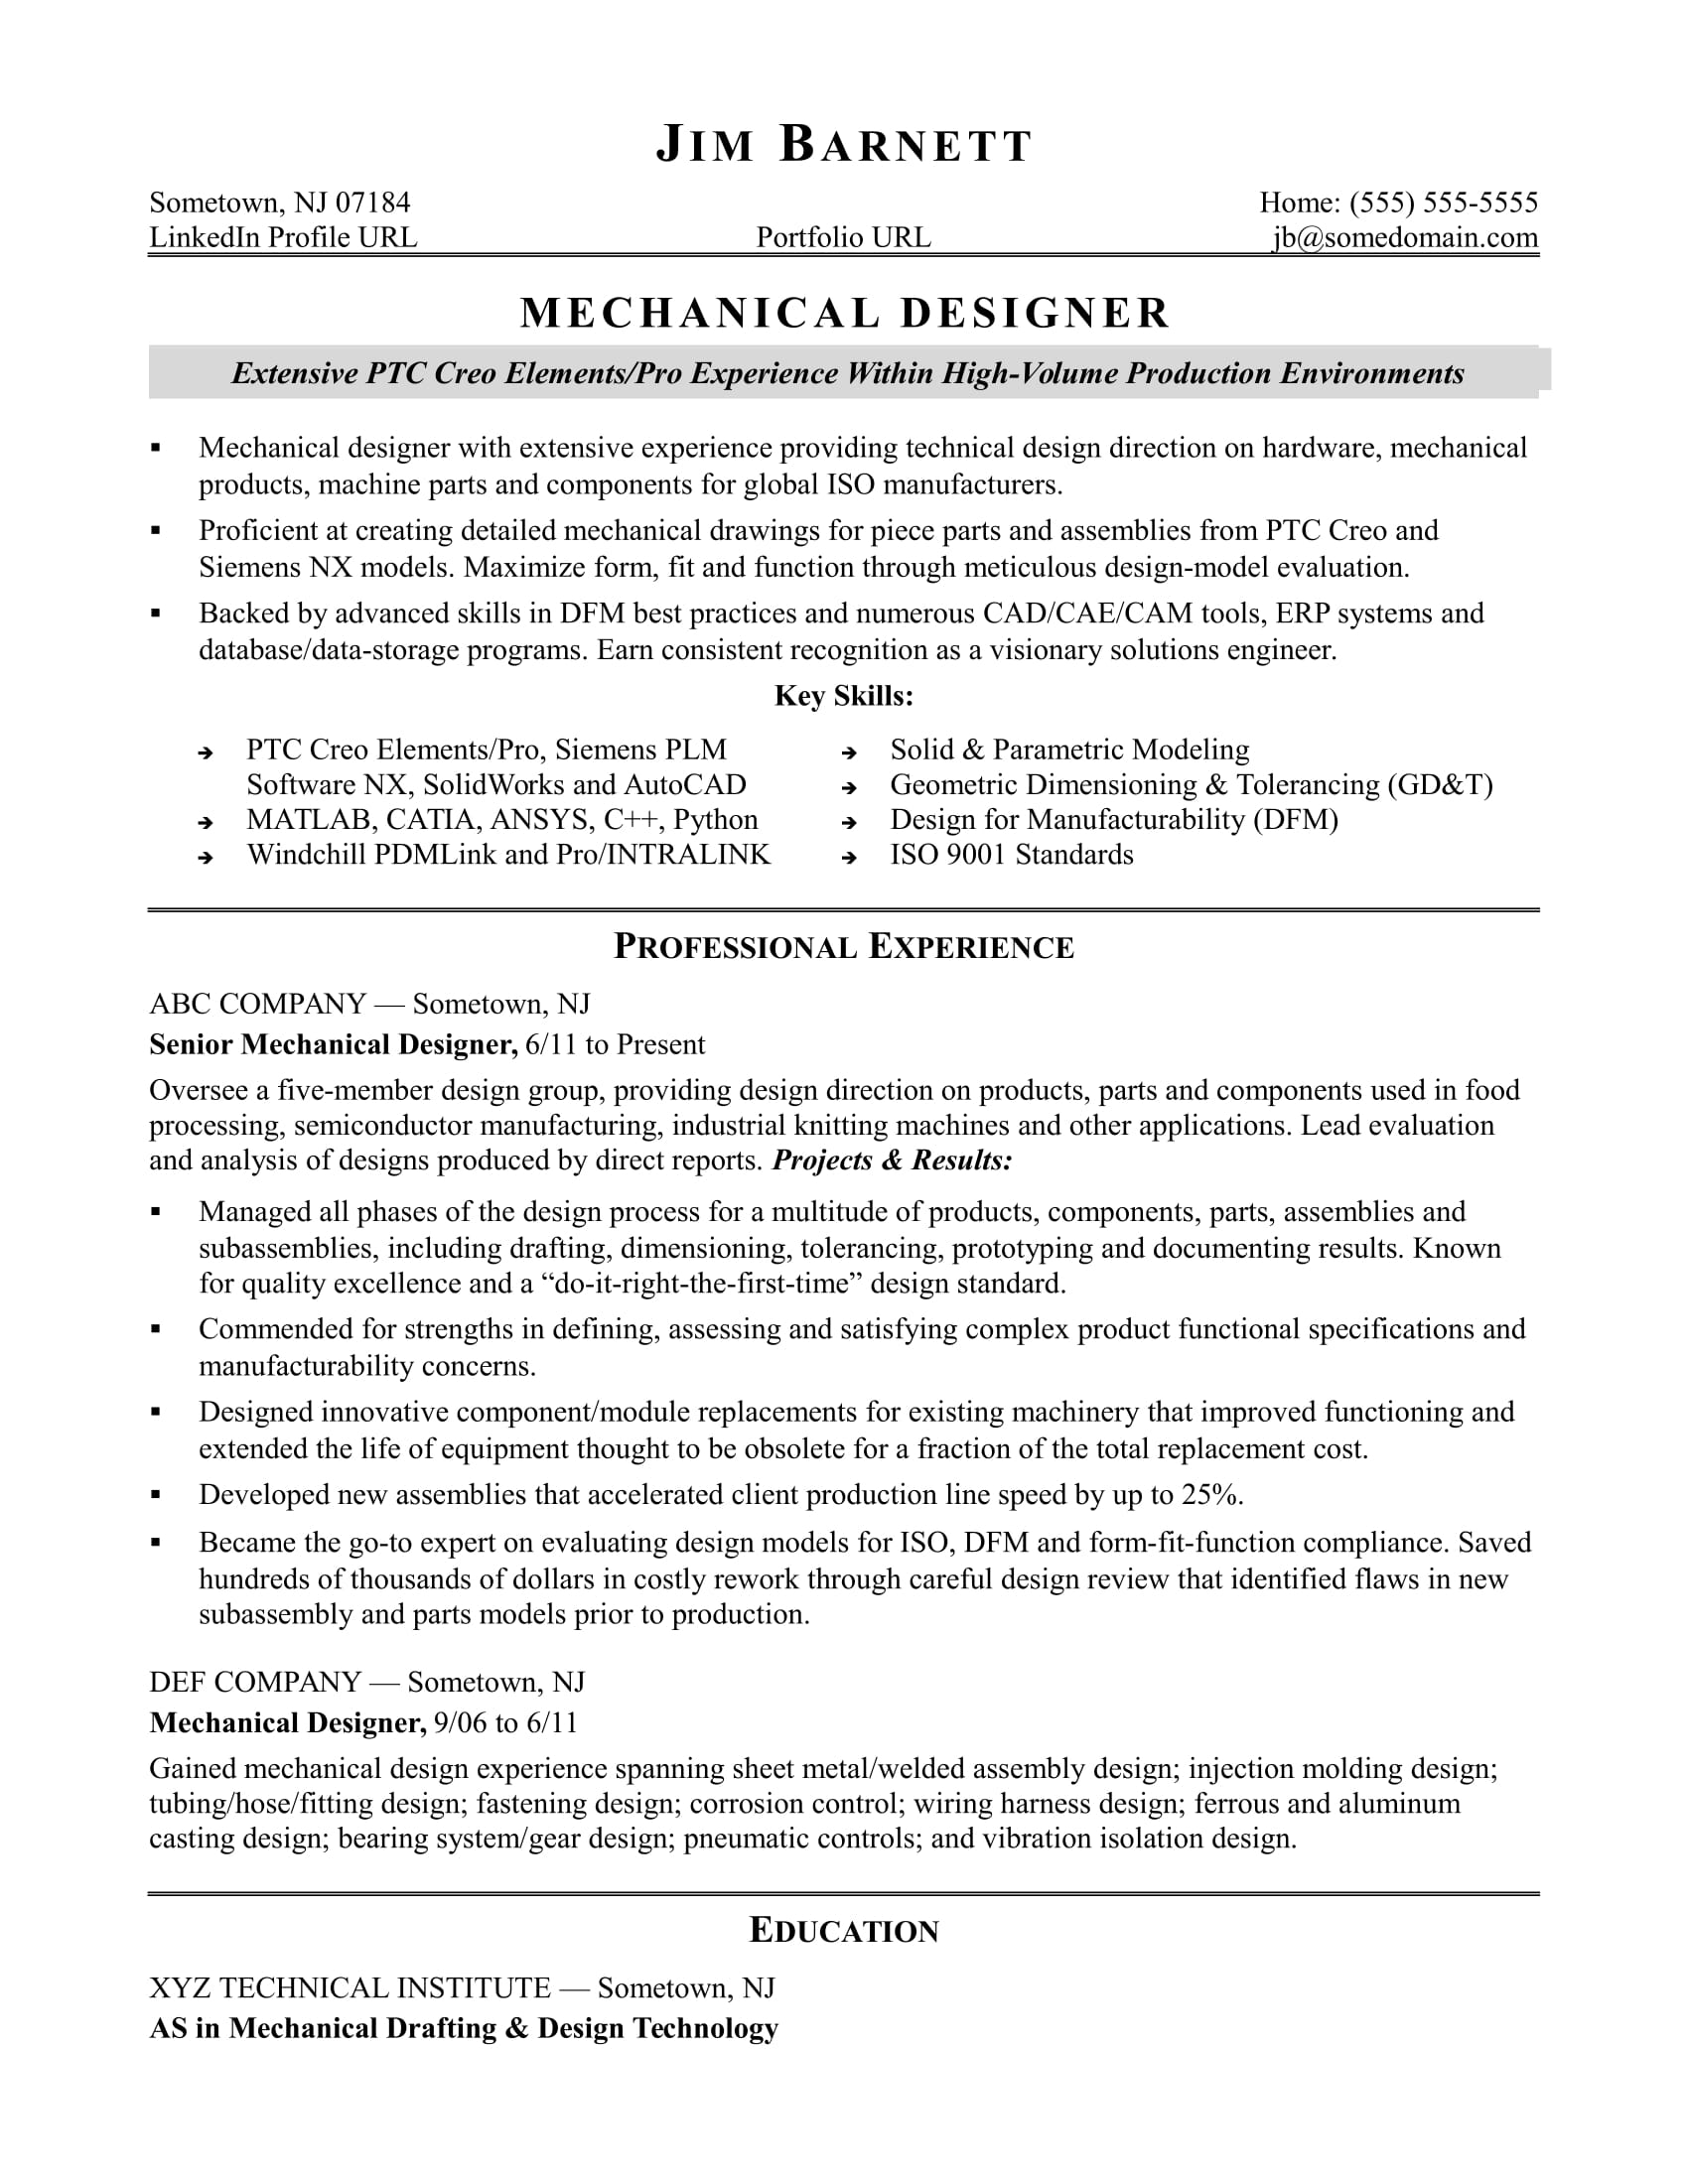 Electrical Project Engineer Resume Sample Sample Resume For An Experienced Mechanical Designer Monster